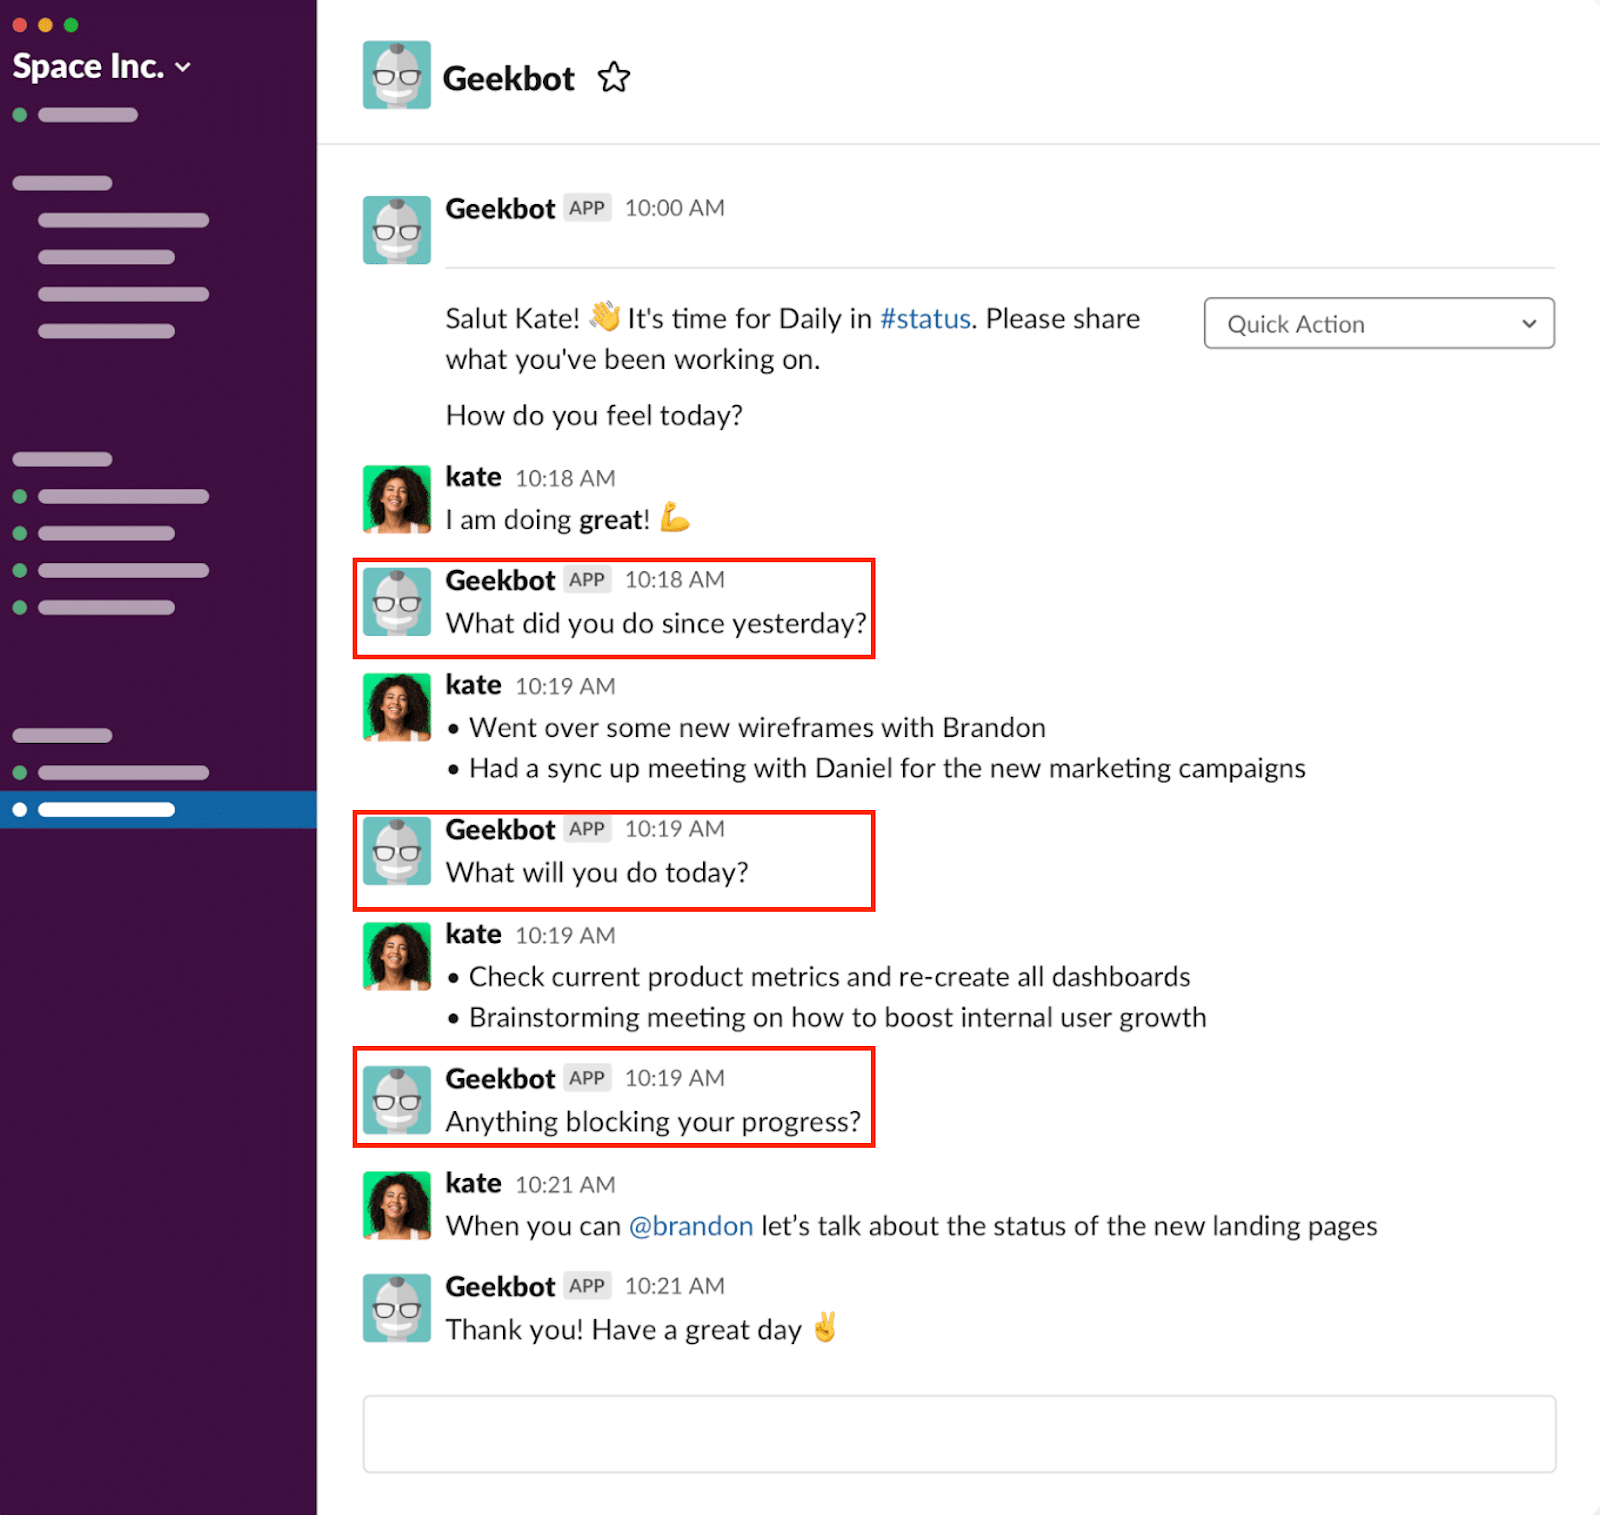 Geekbot Slack Questions: What did you do since yesterday? What will you do today? Anything blocking your progress?